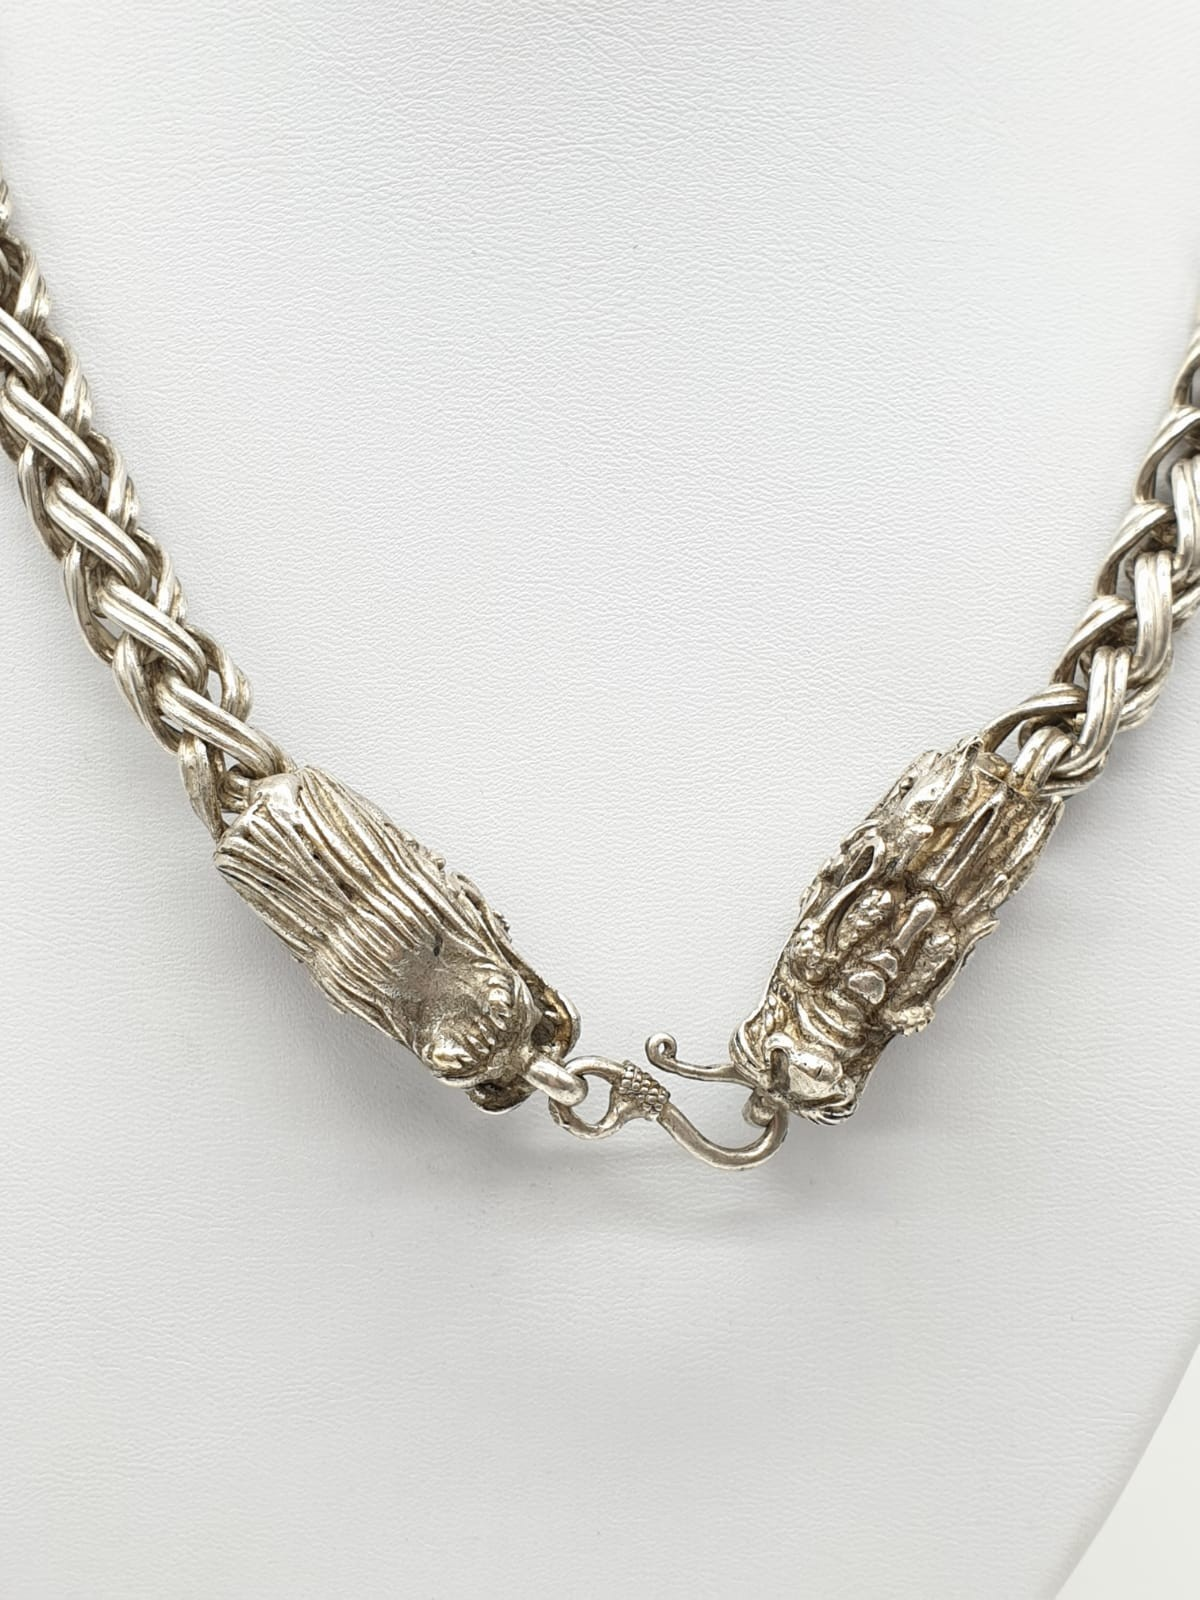 A Tibetan silver, braded chain, necklace with two Chinese dragon heads. Necklace length: 68cm, - Image 6 of 6